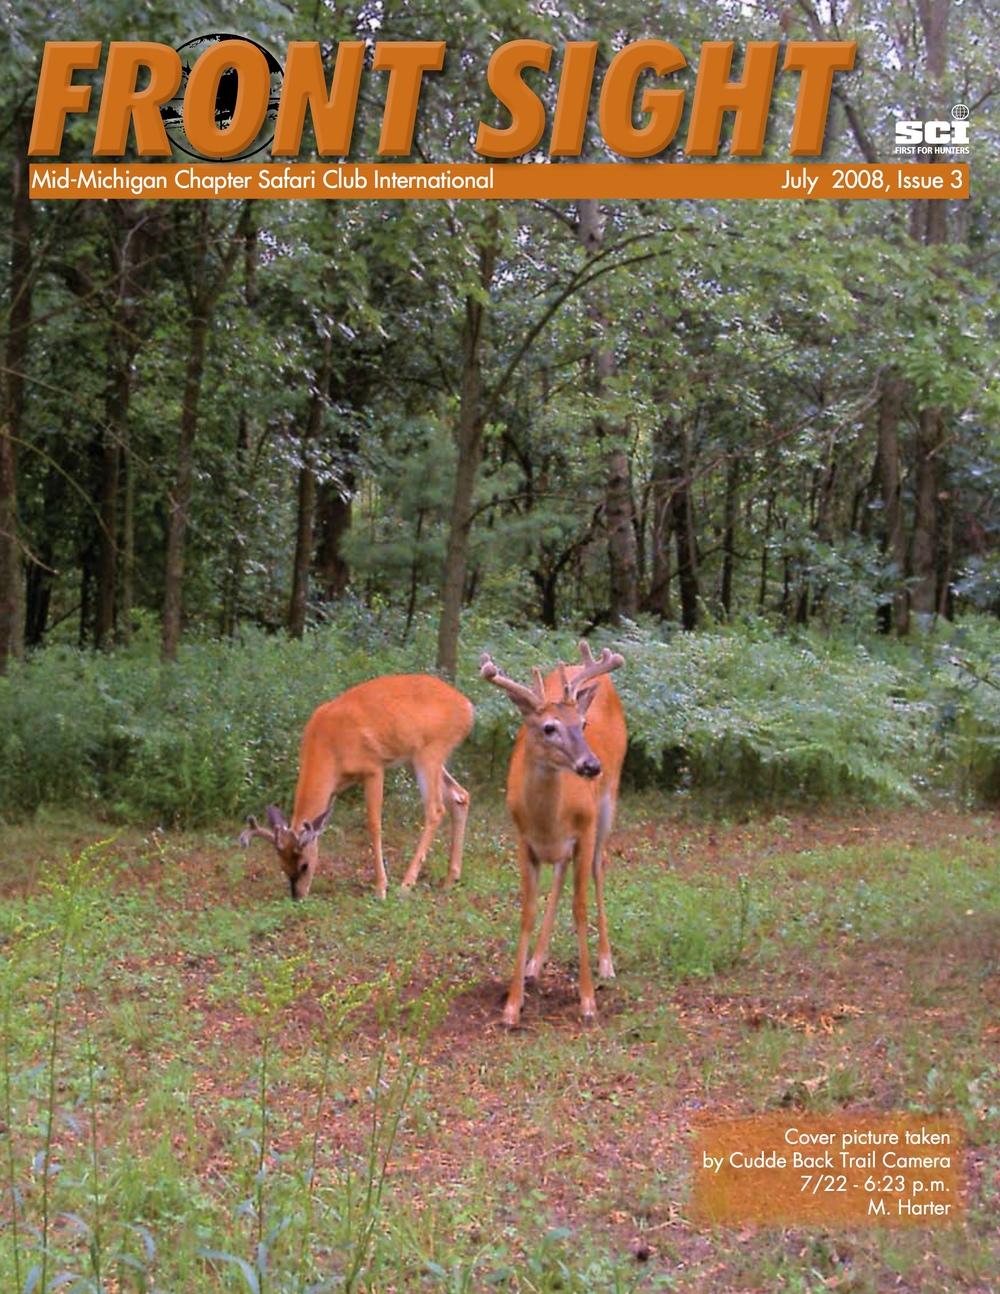 Issue 3, July 2008